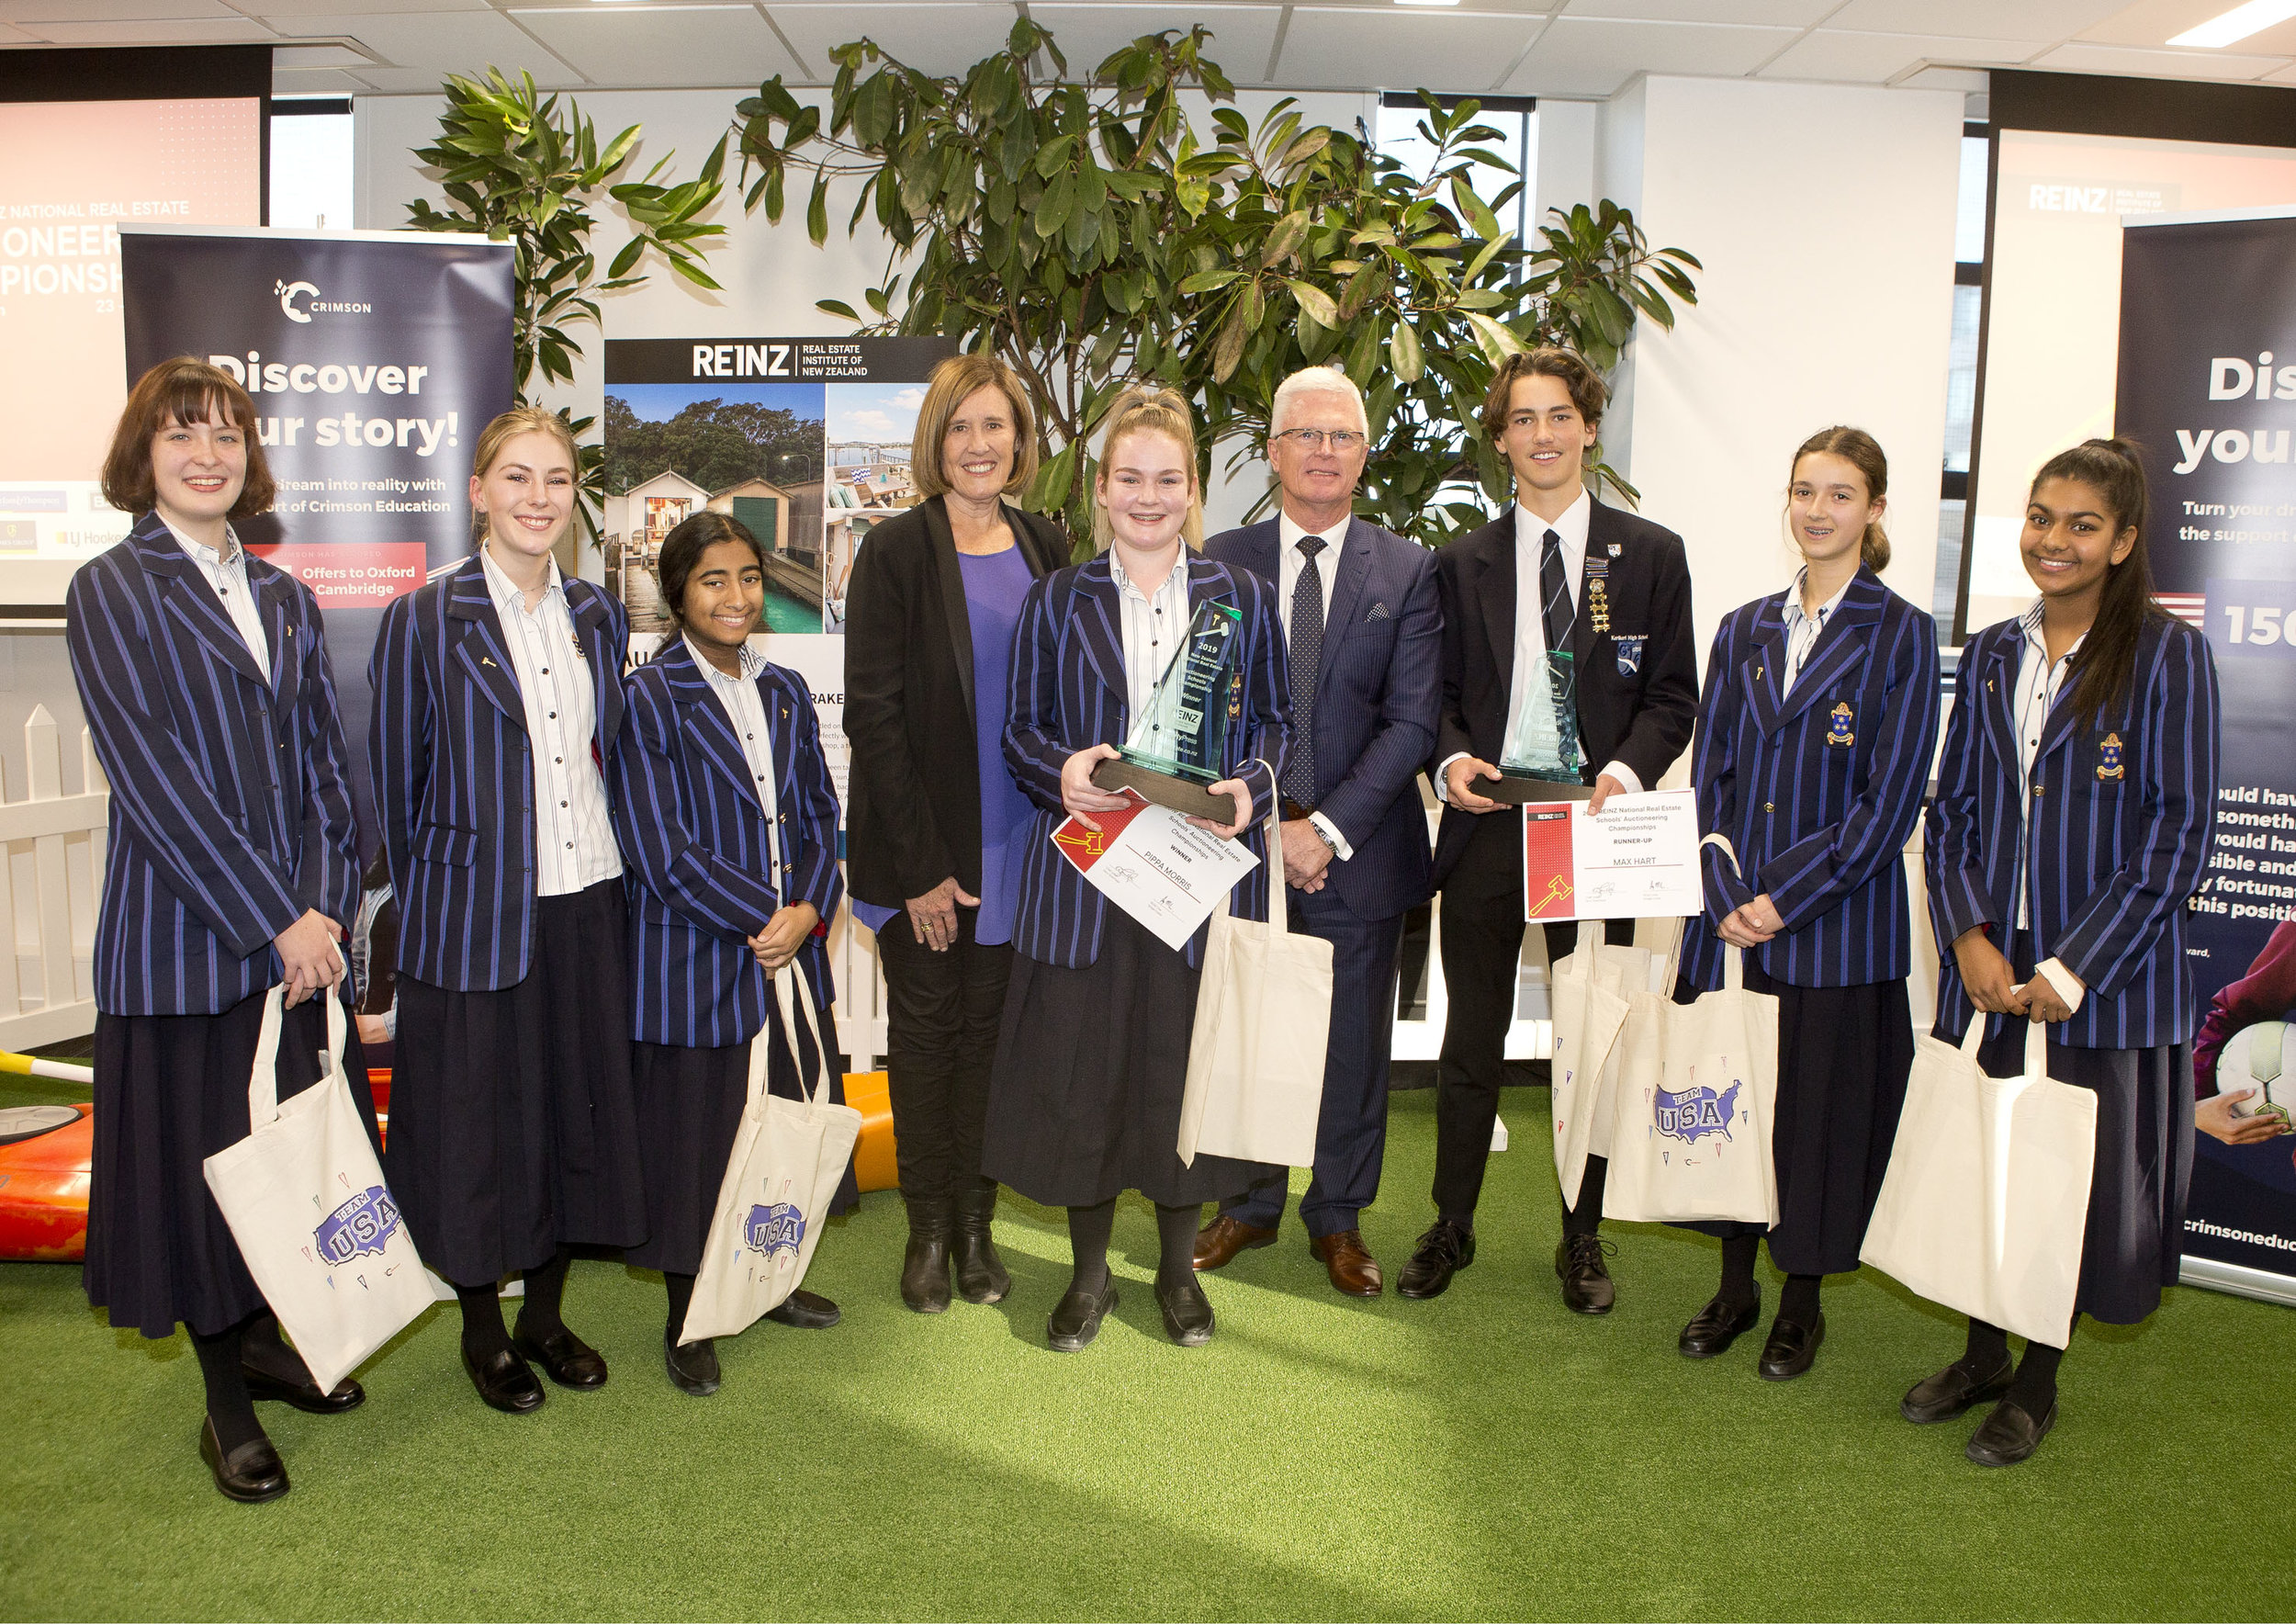 Auckland Diocesan School for Girls competitors